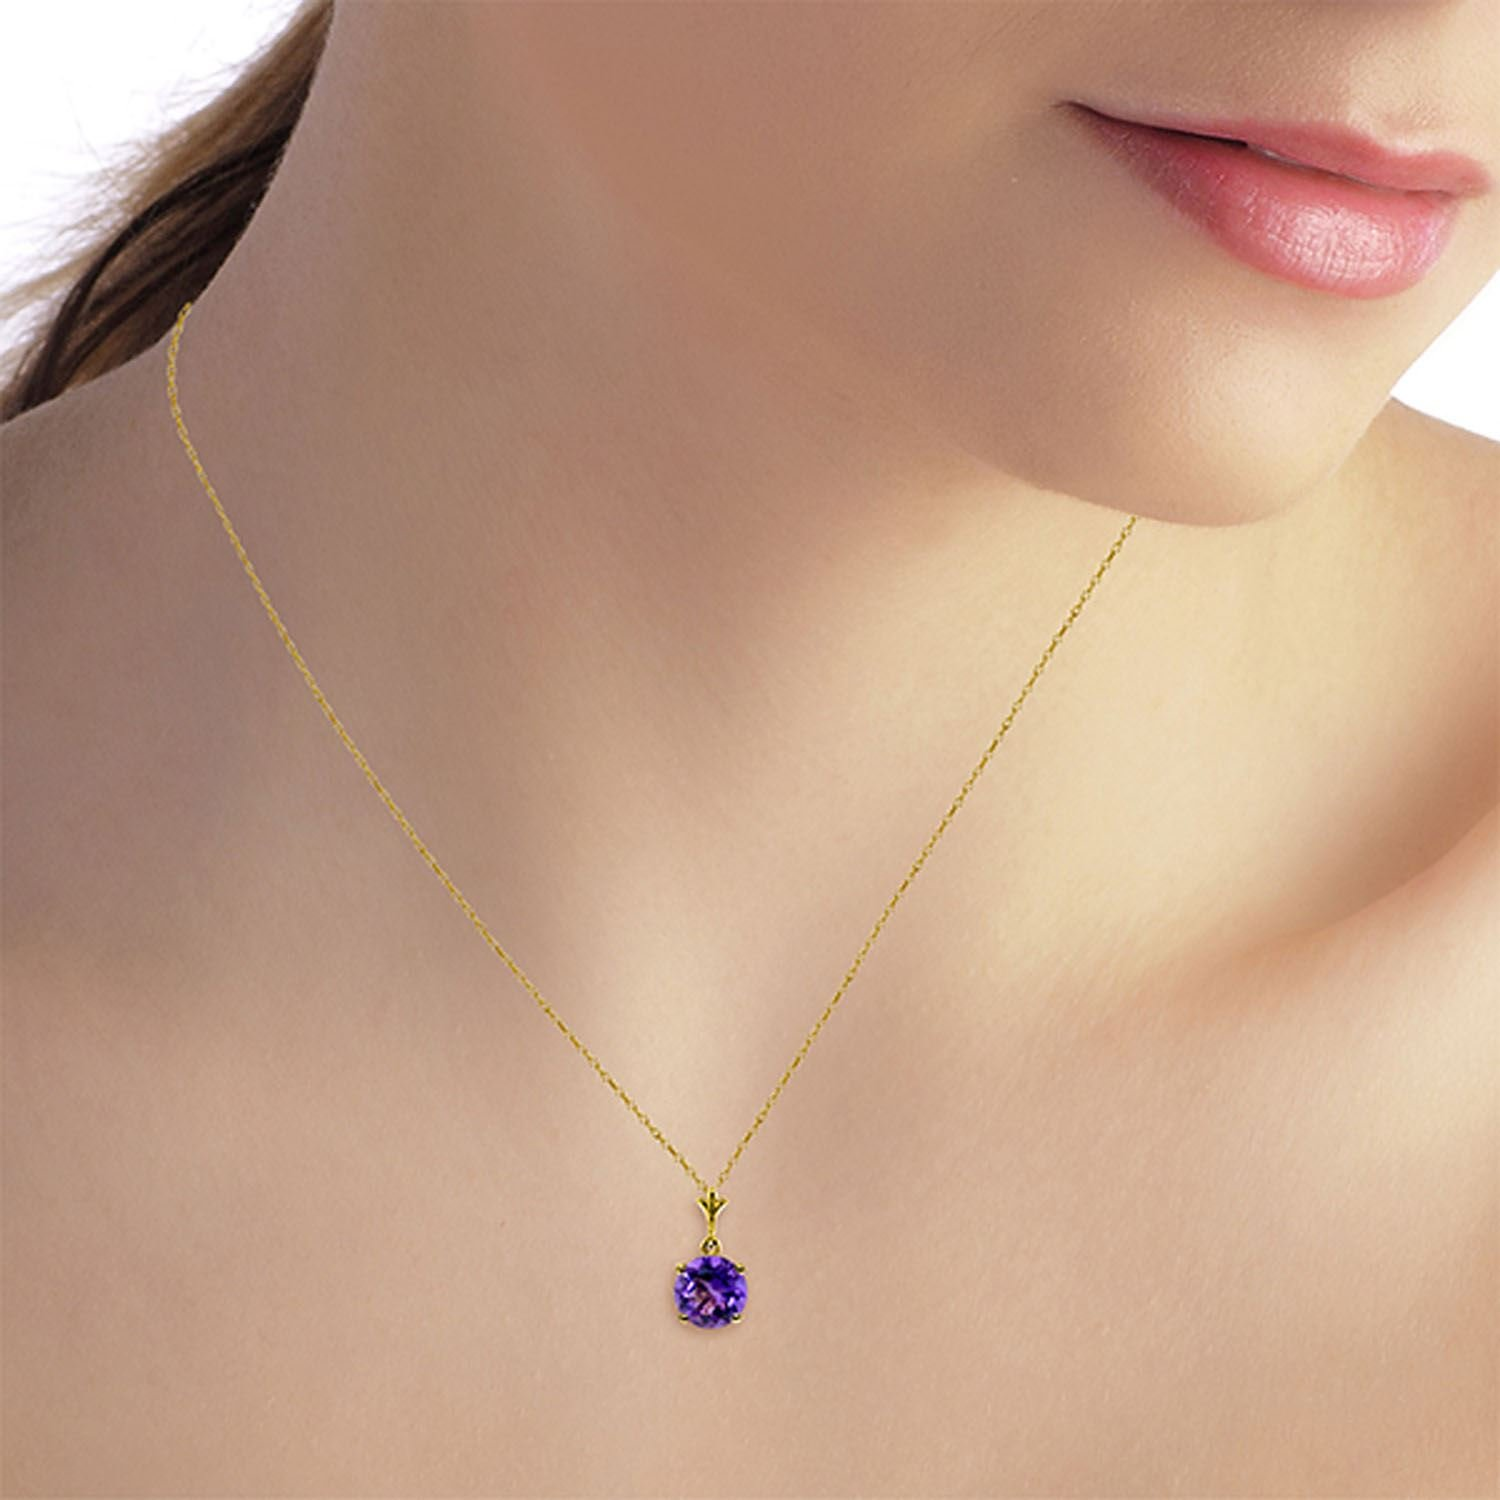 ALARRI 1.15 Carat 14K Solid Gold Love Your Smile Amethyst Necklace with 20 Inch Chain Length